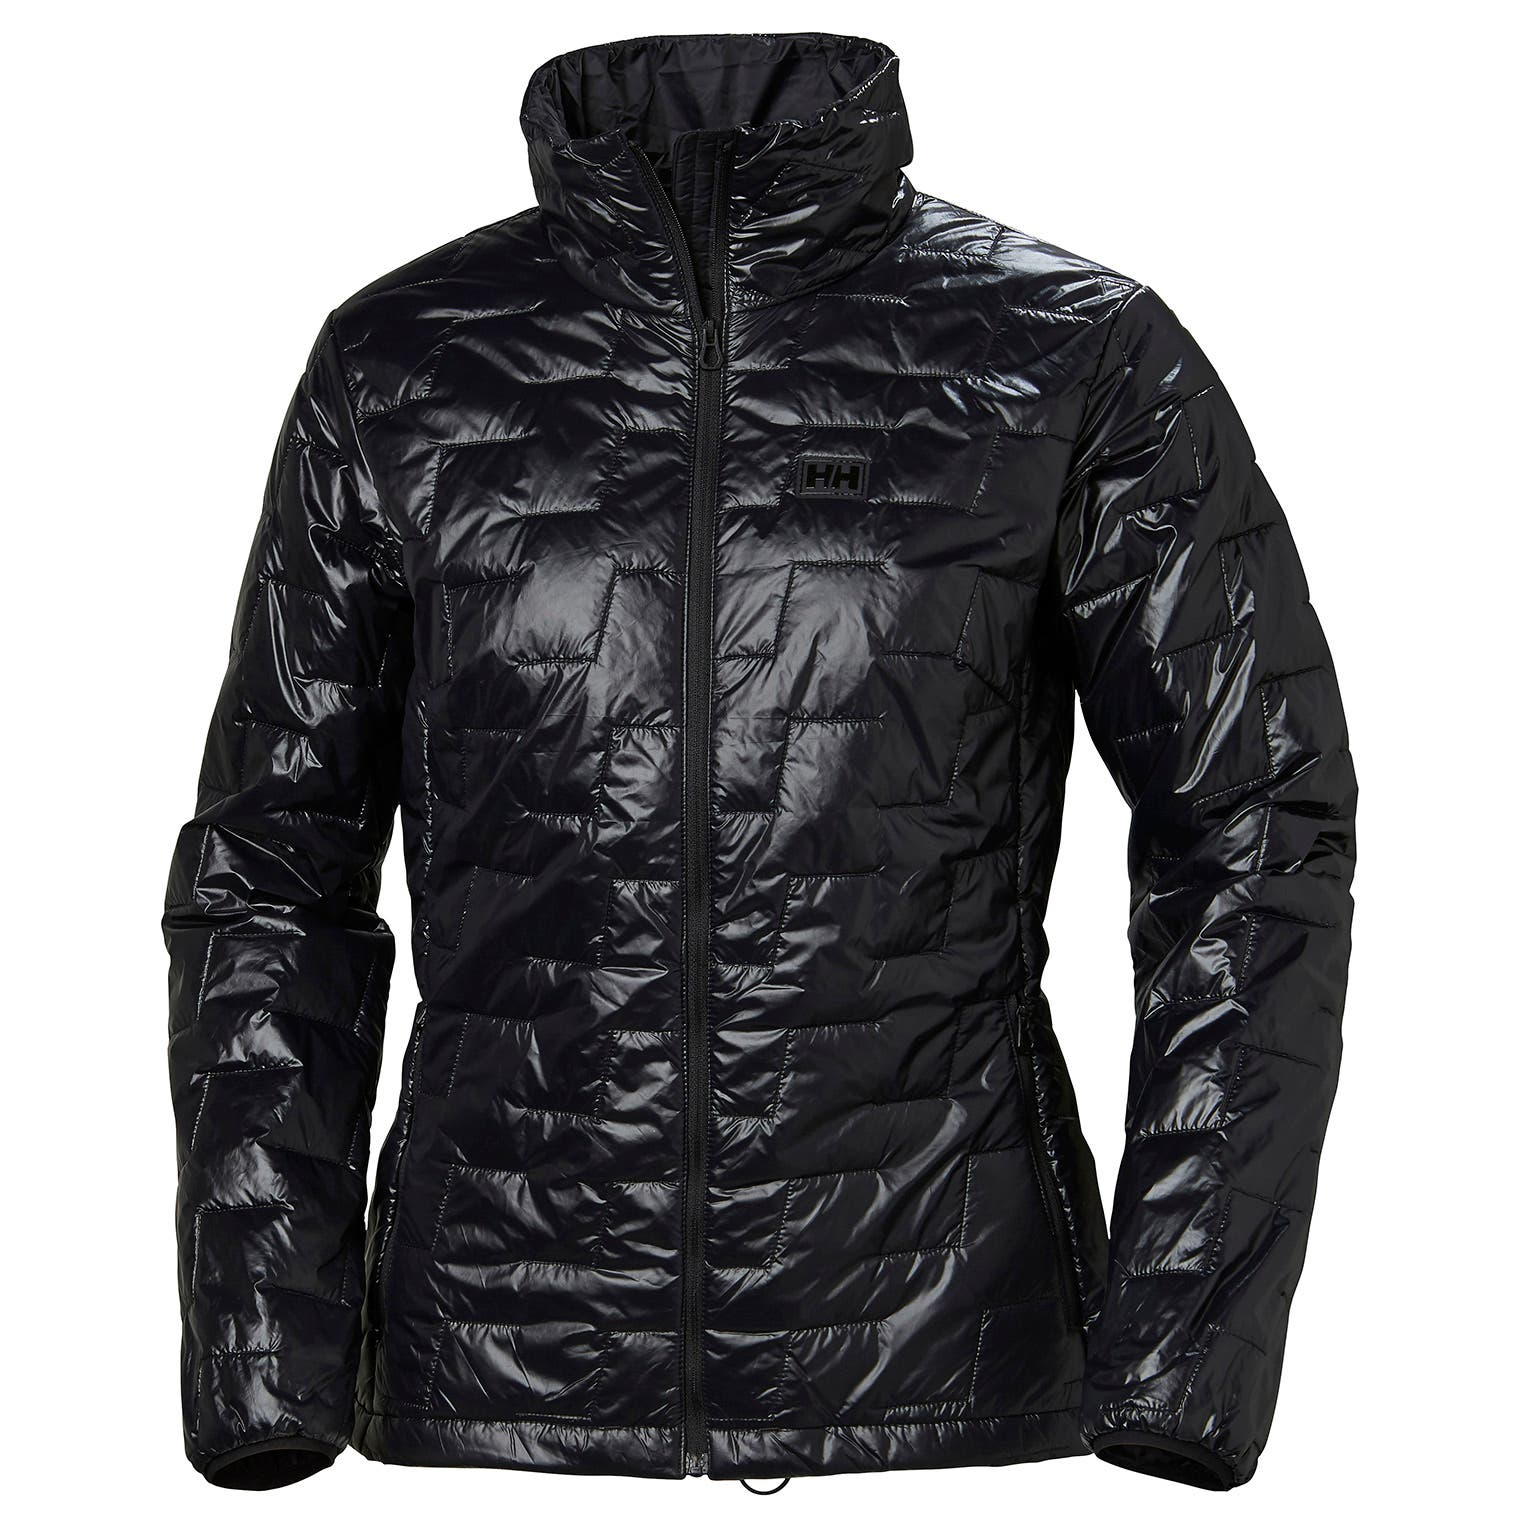 Helly Hansen Women's Lifaloft Insulator Jacket in Black from the front